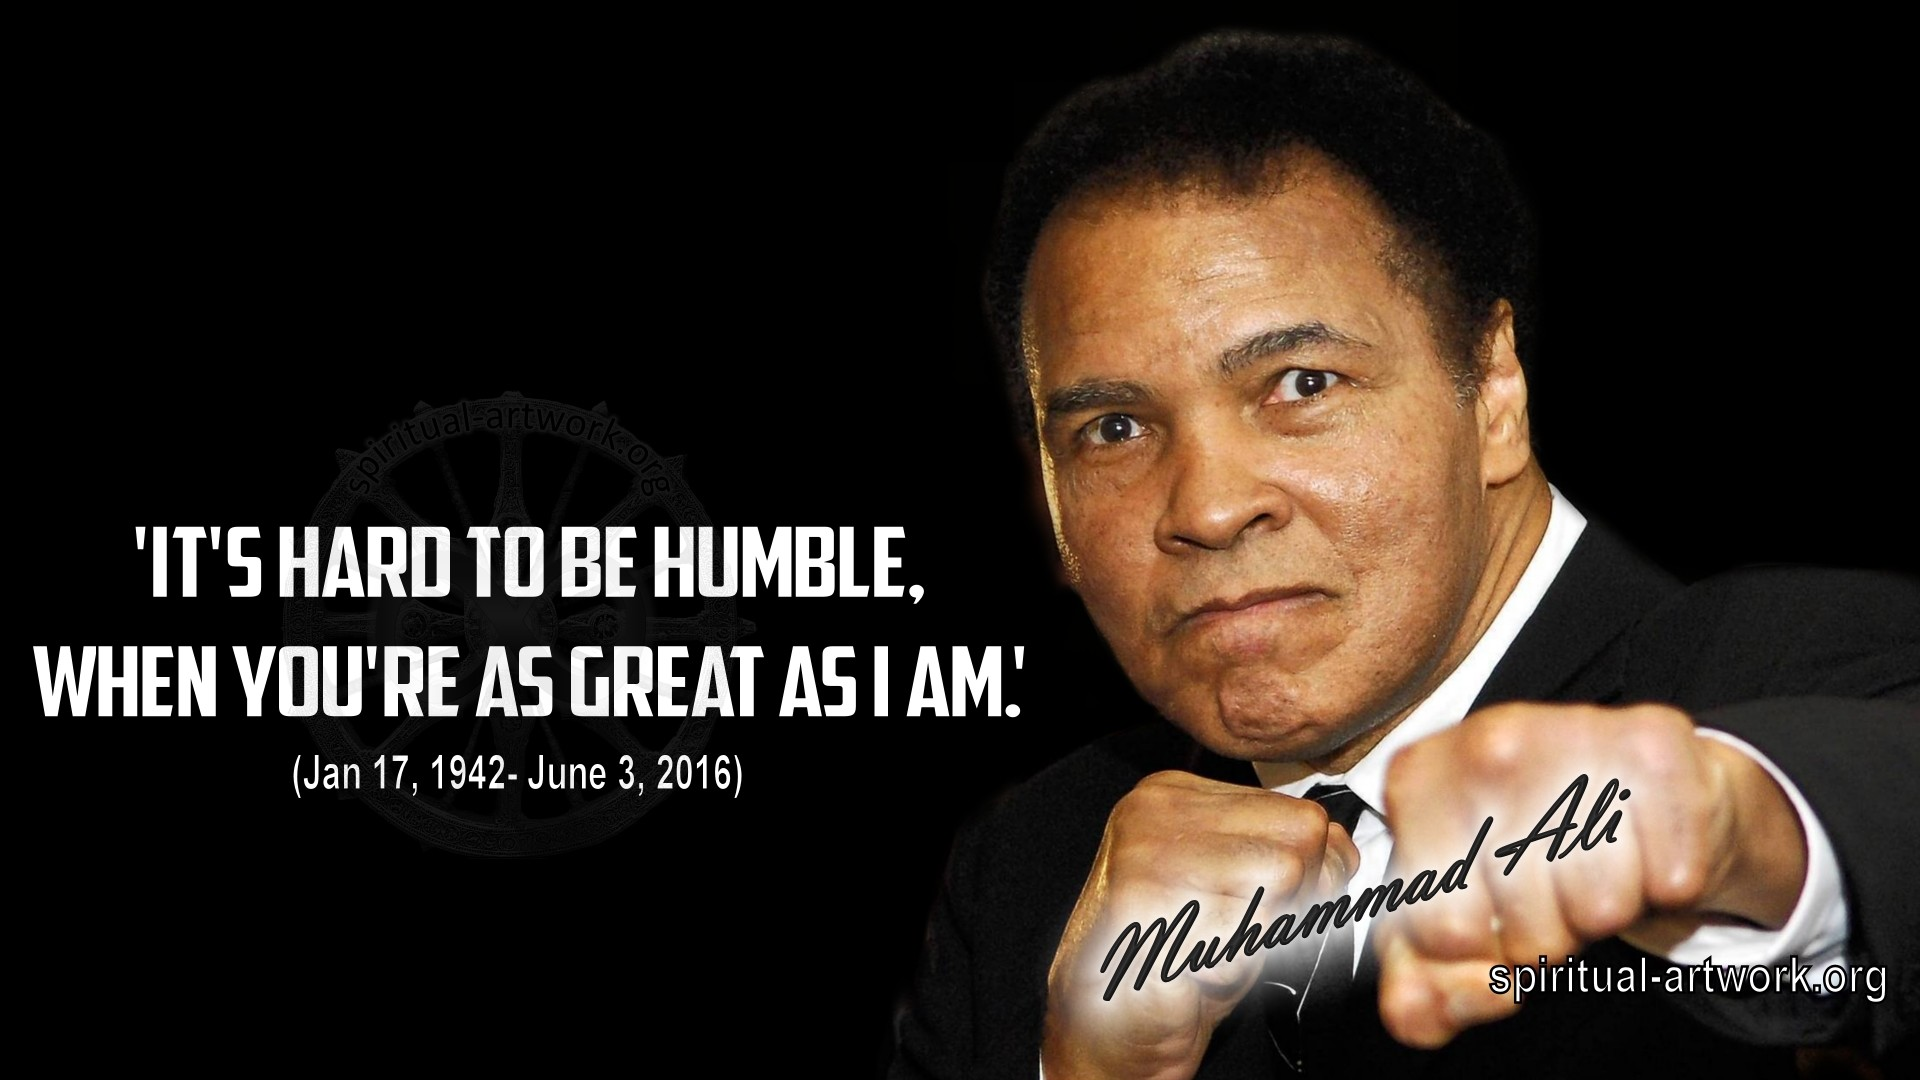 Muhammad Ali- Its Hard to be Humble when you're as great as I